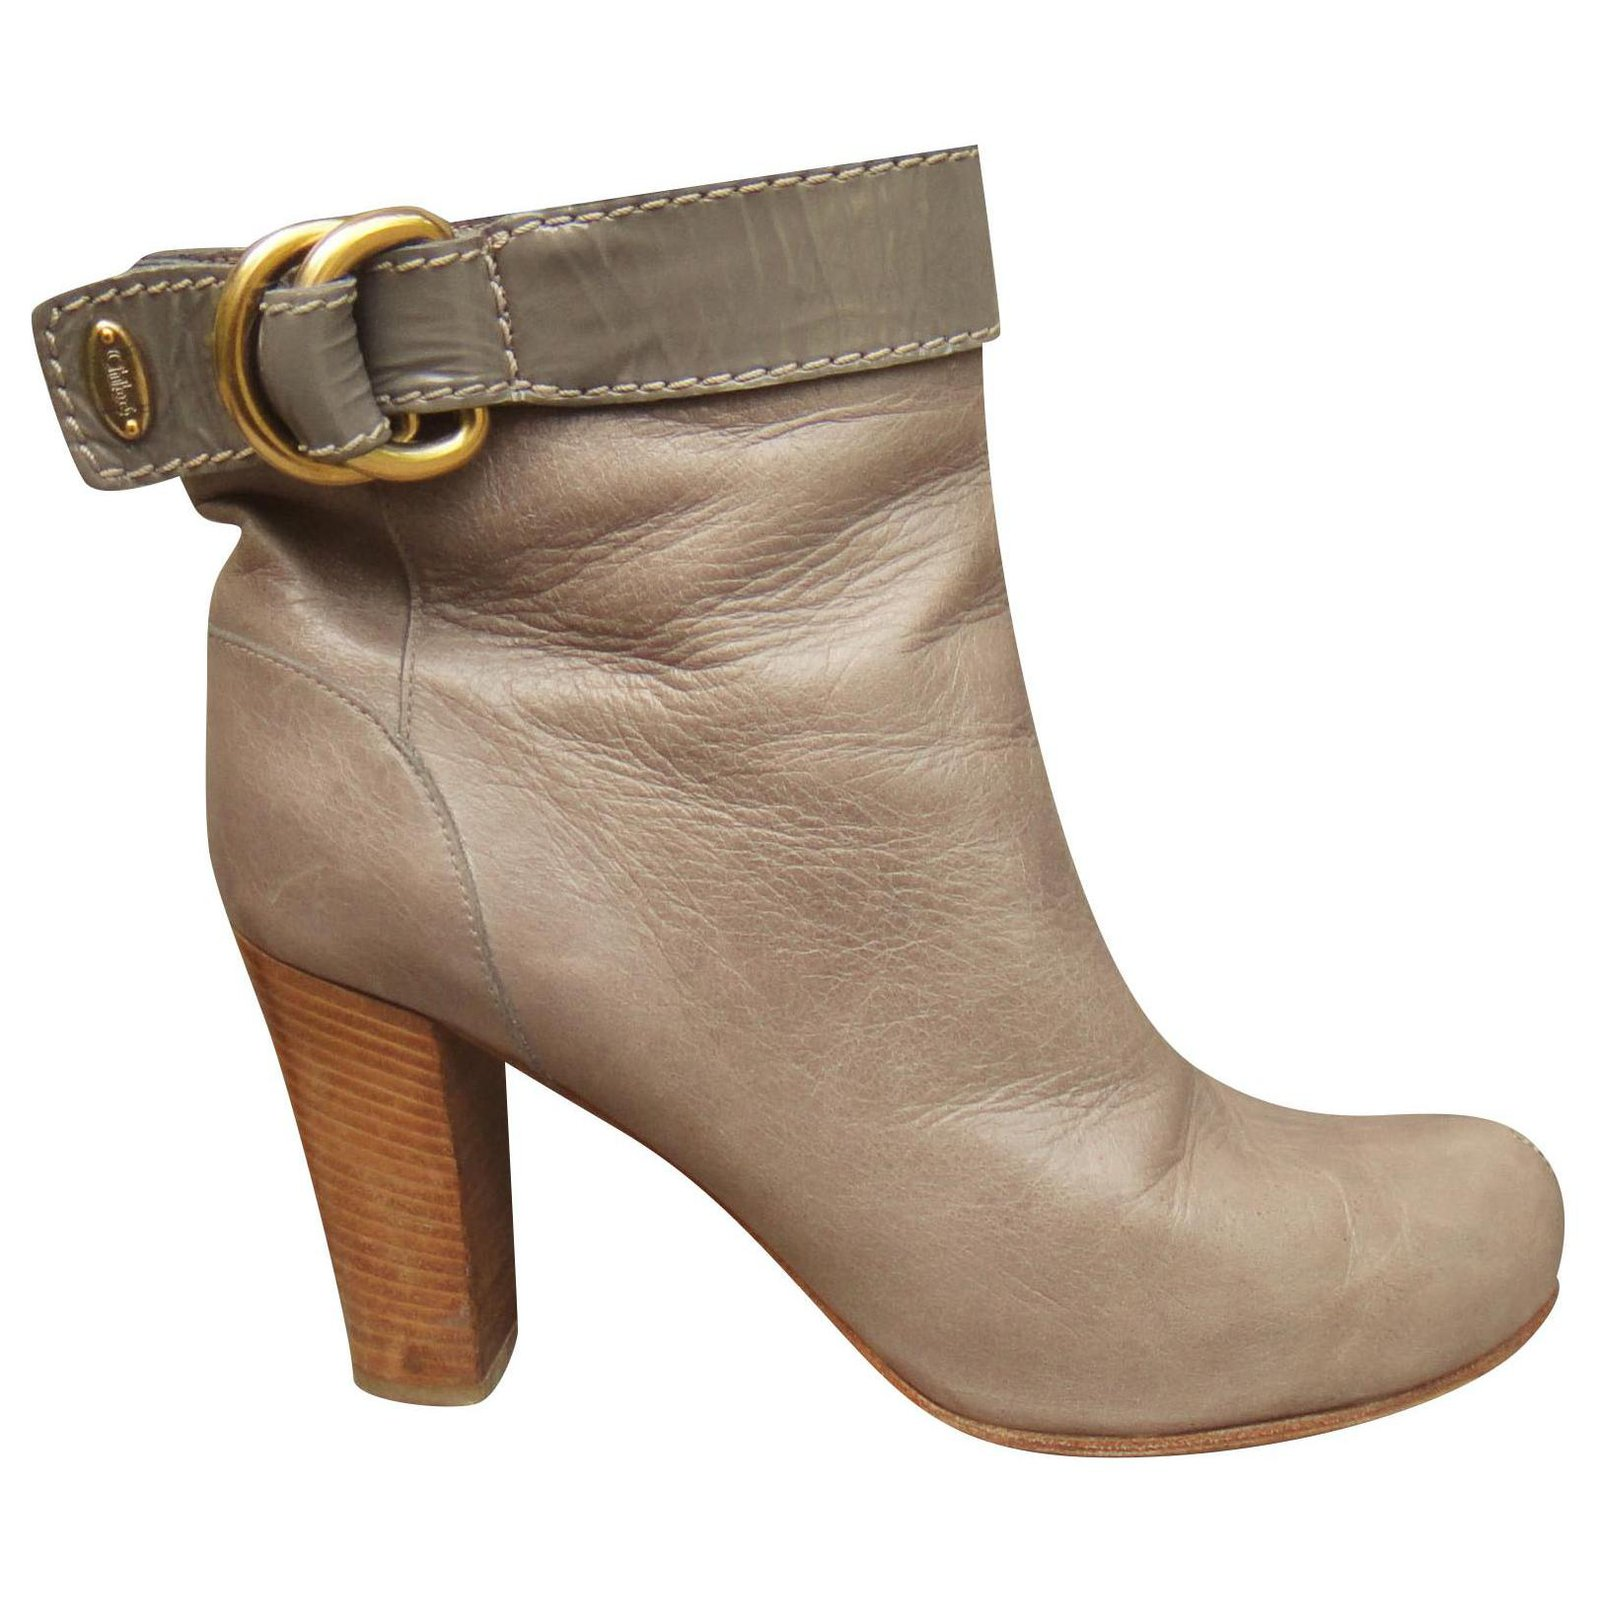 sale usa online huge sale official shop Chloé Chloé ankle boots 38 Ankle Boots Leather Taupe ref.162599 ...